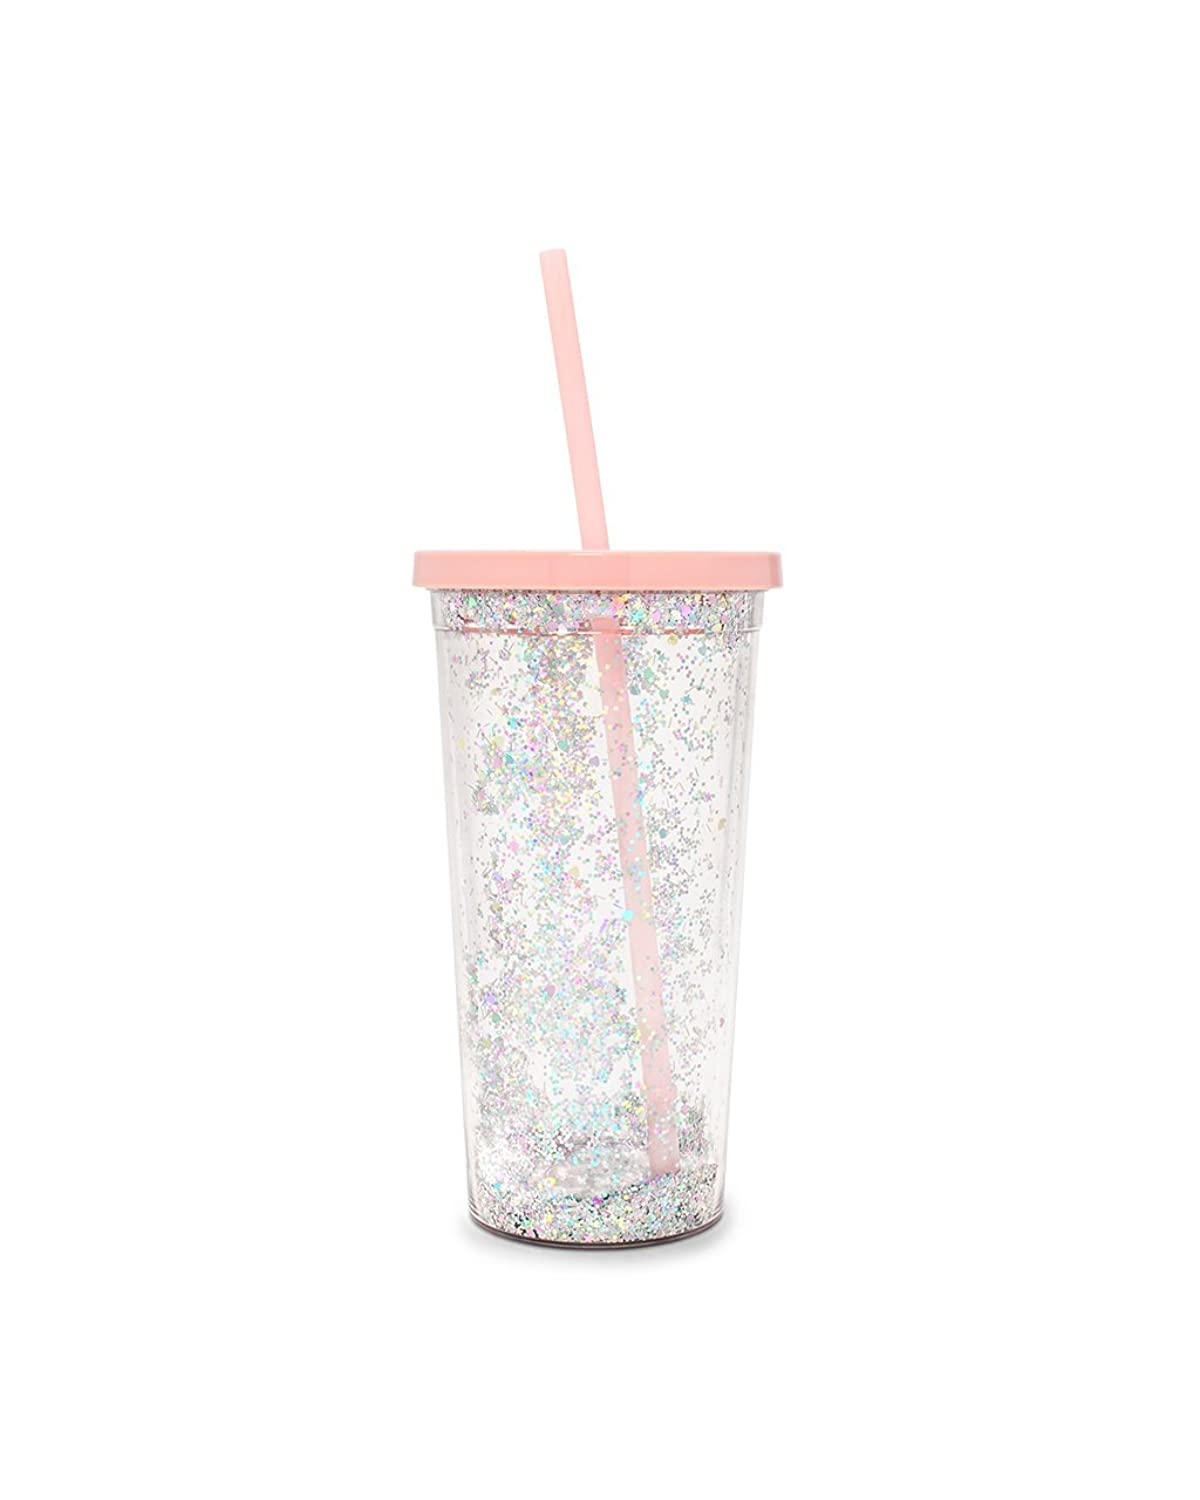 Ban.Do Women's Glitter Bomb Tumbler With Straw by Bando